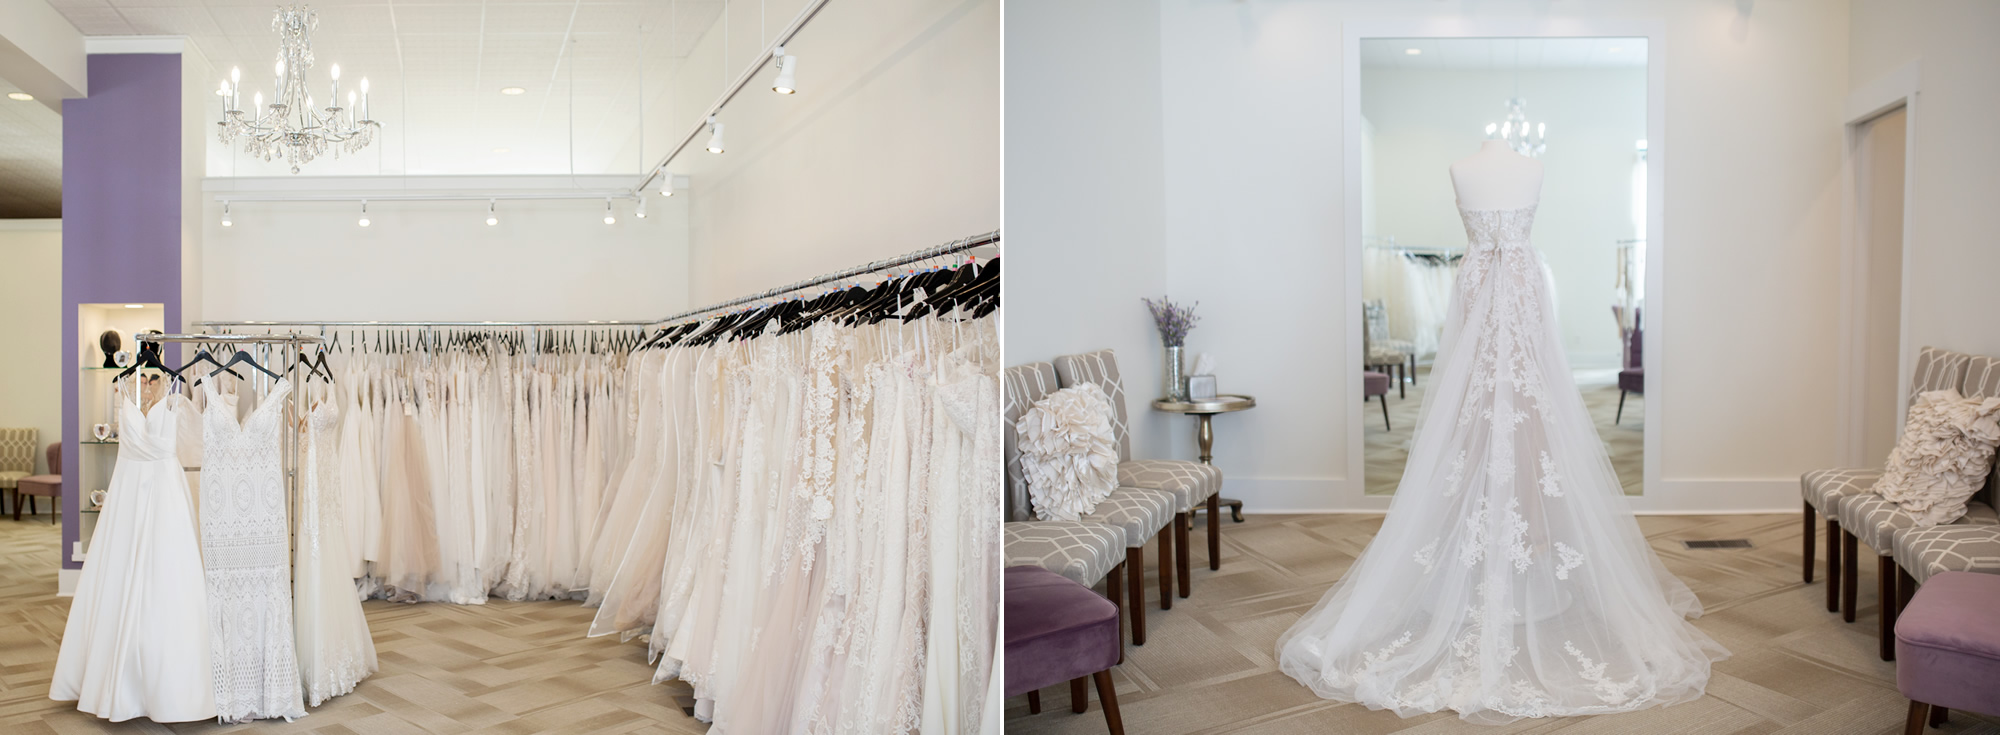 Wedding gown boutique